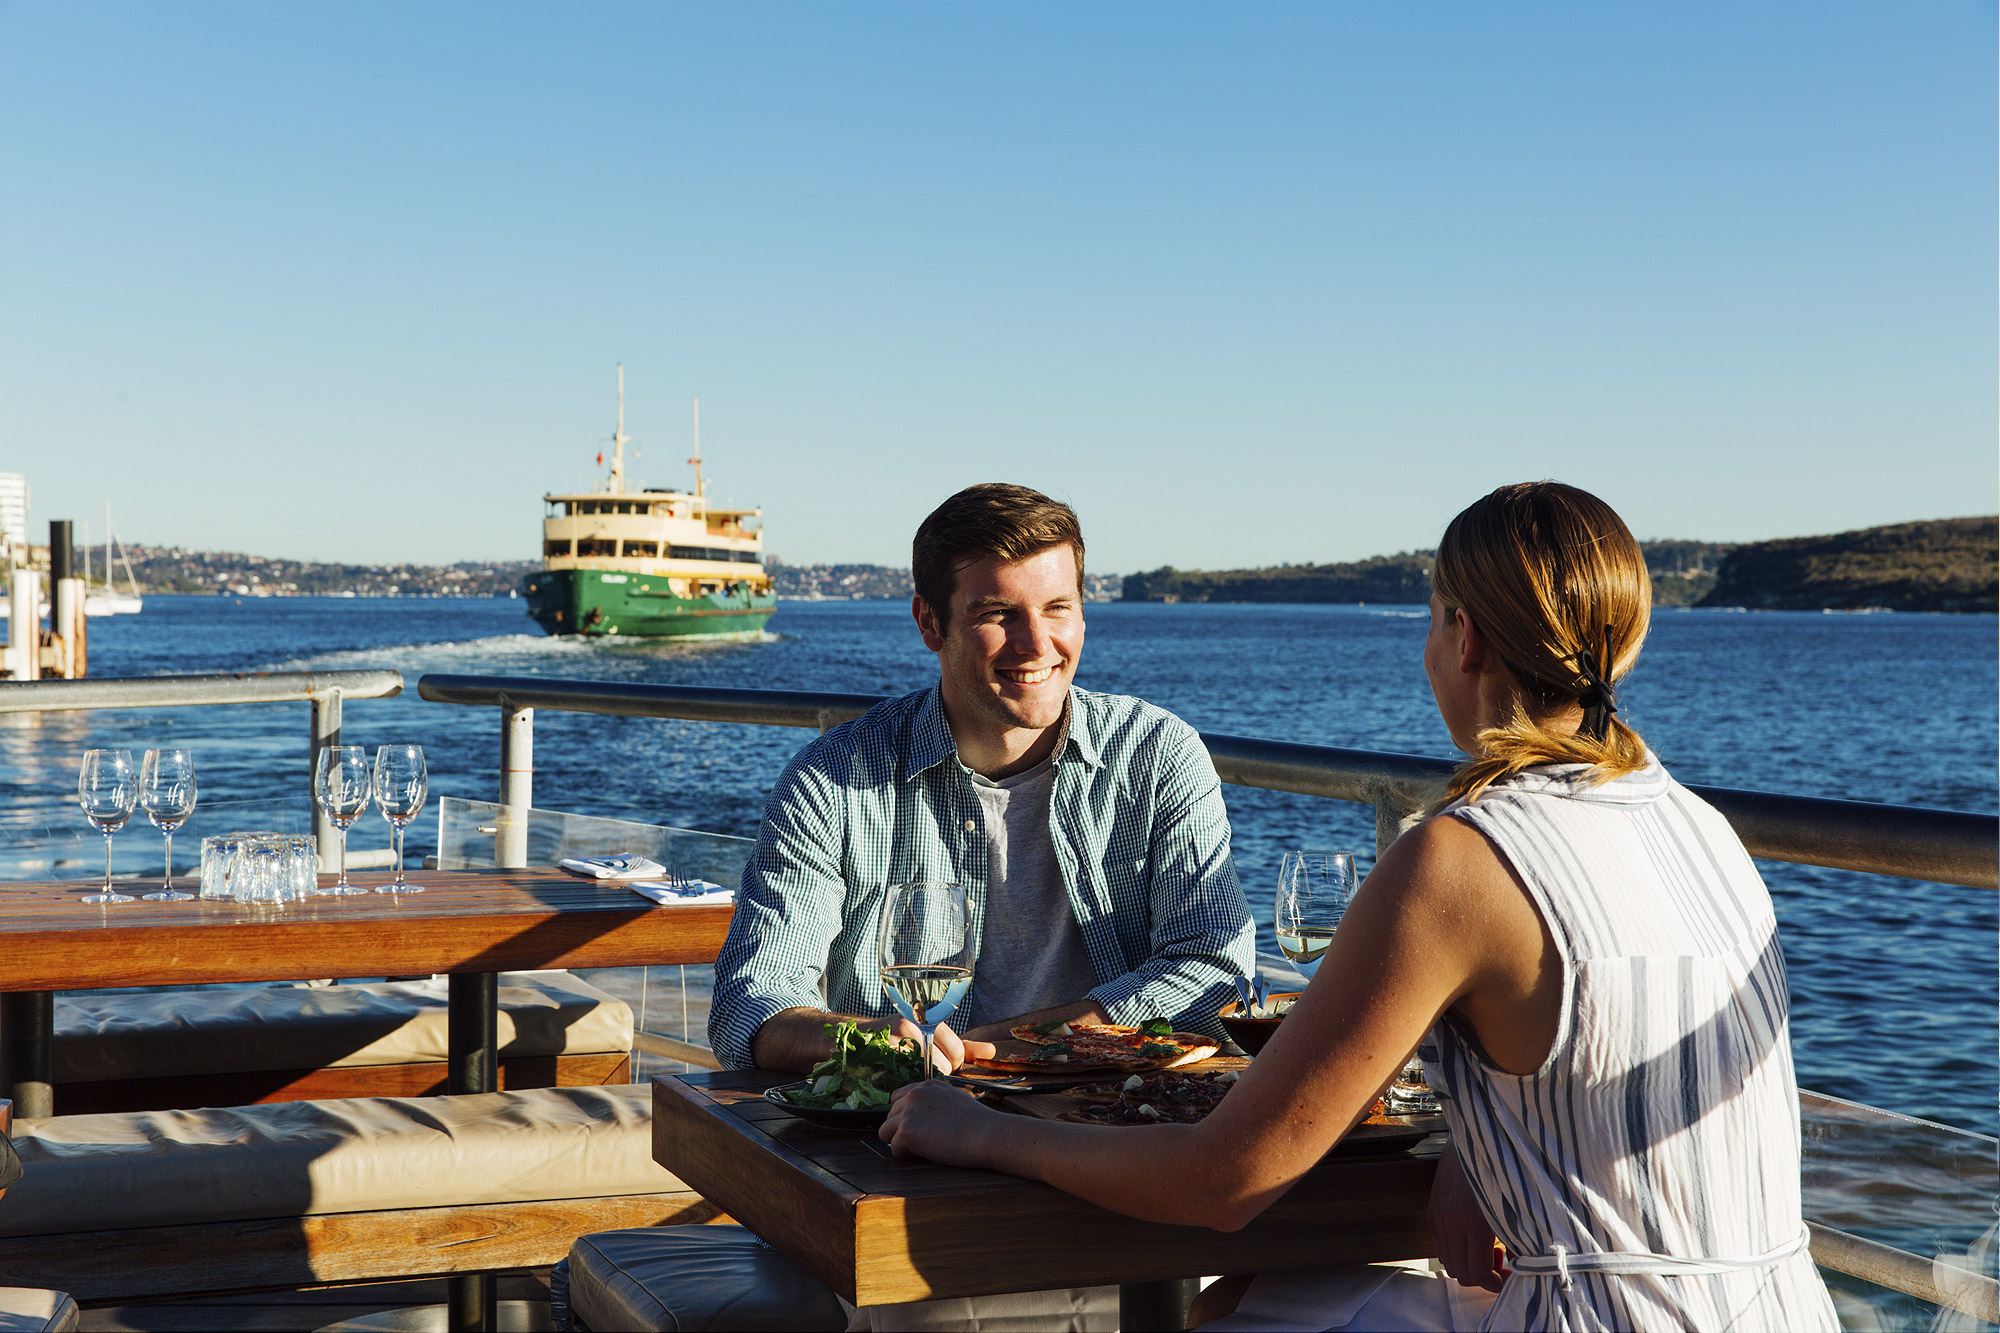 Dining at Manly Wharf